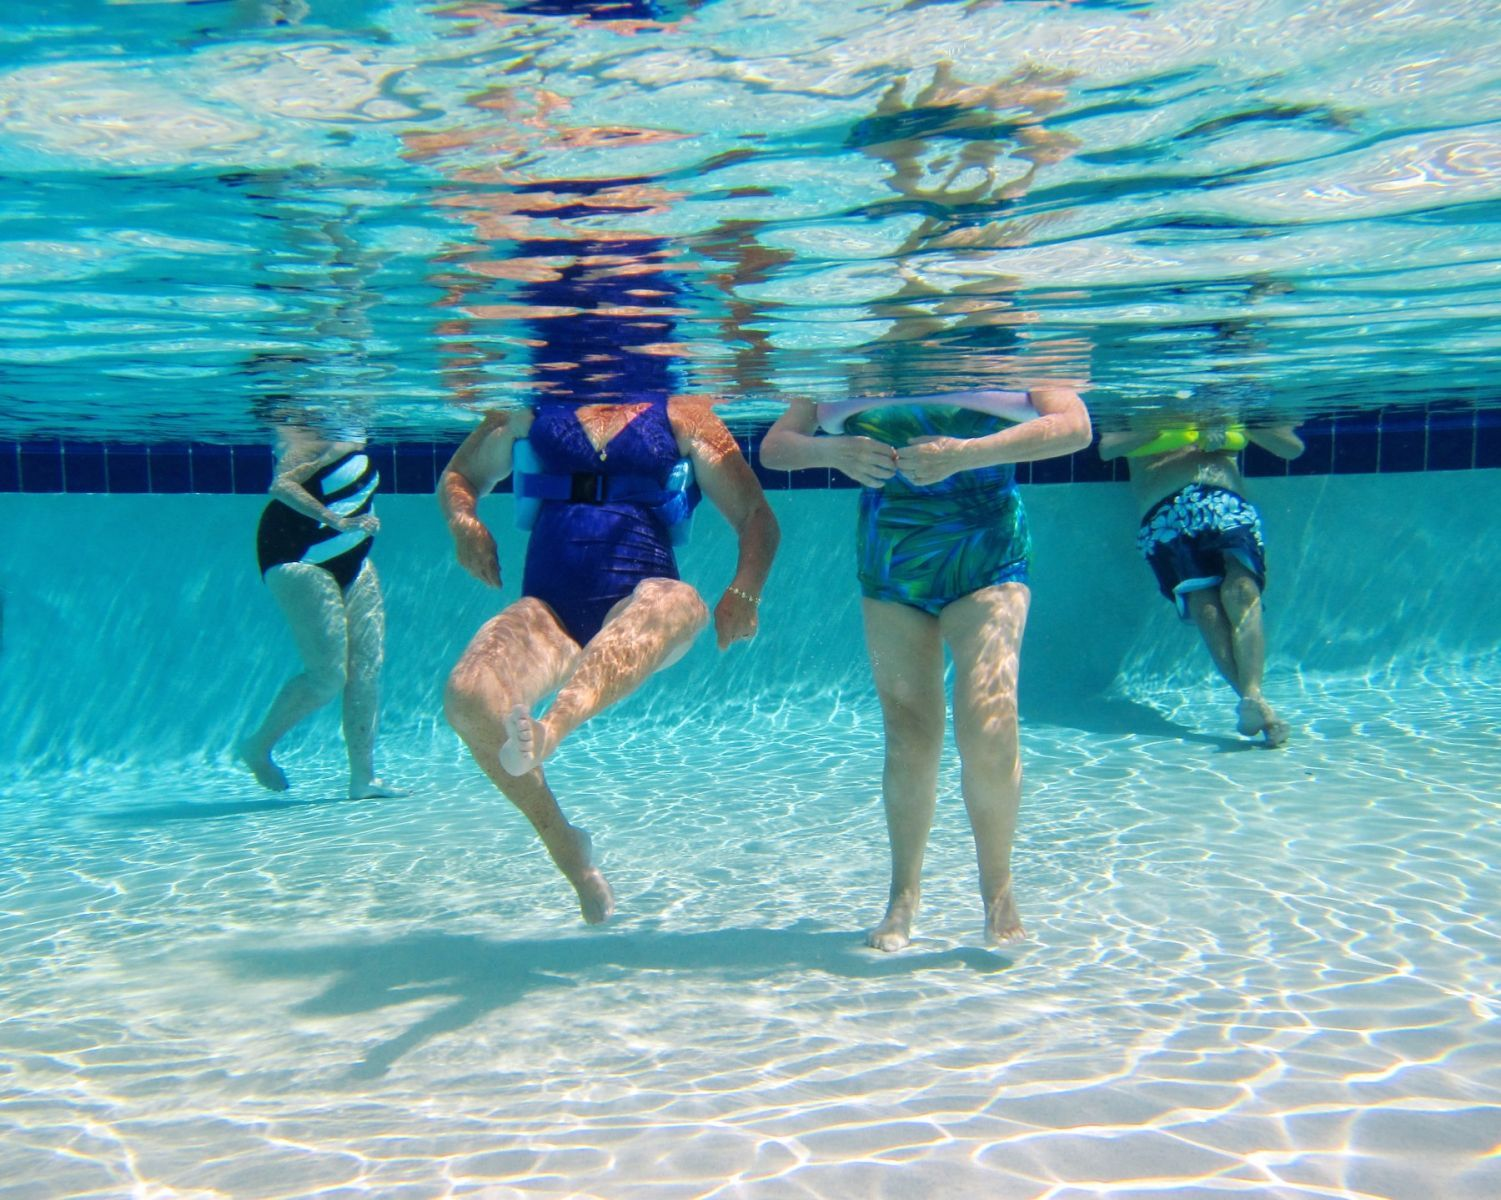 pictures of people swimming